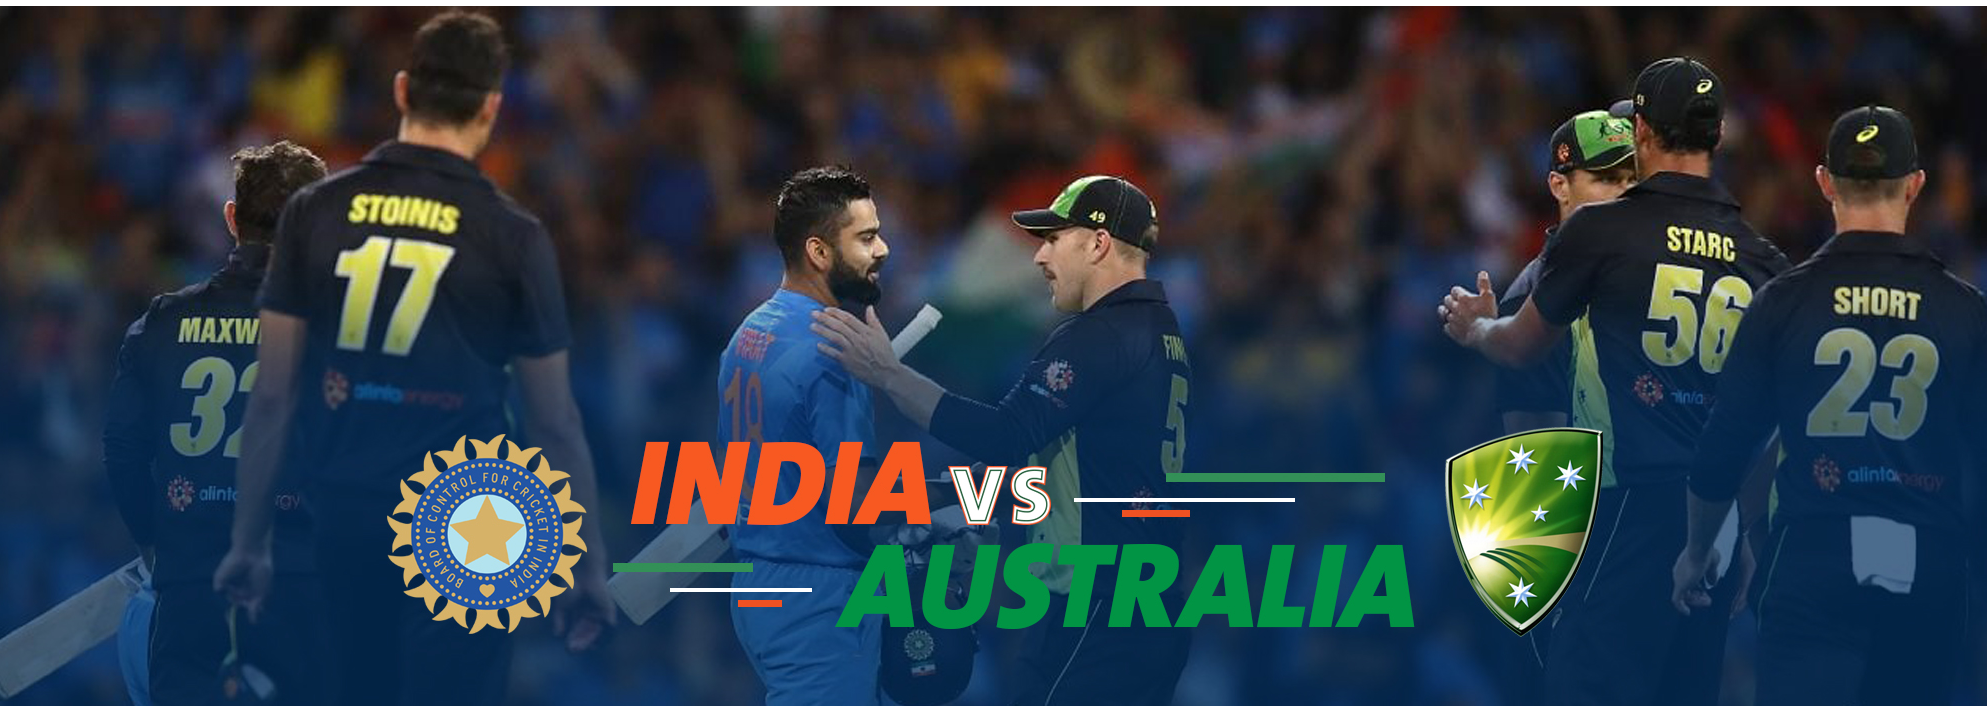 Australia tour of India 2019 Schedule, Teams & Venues